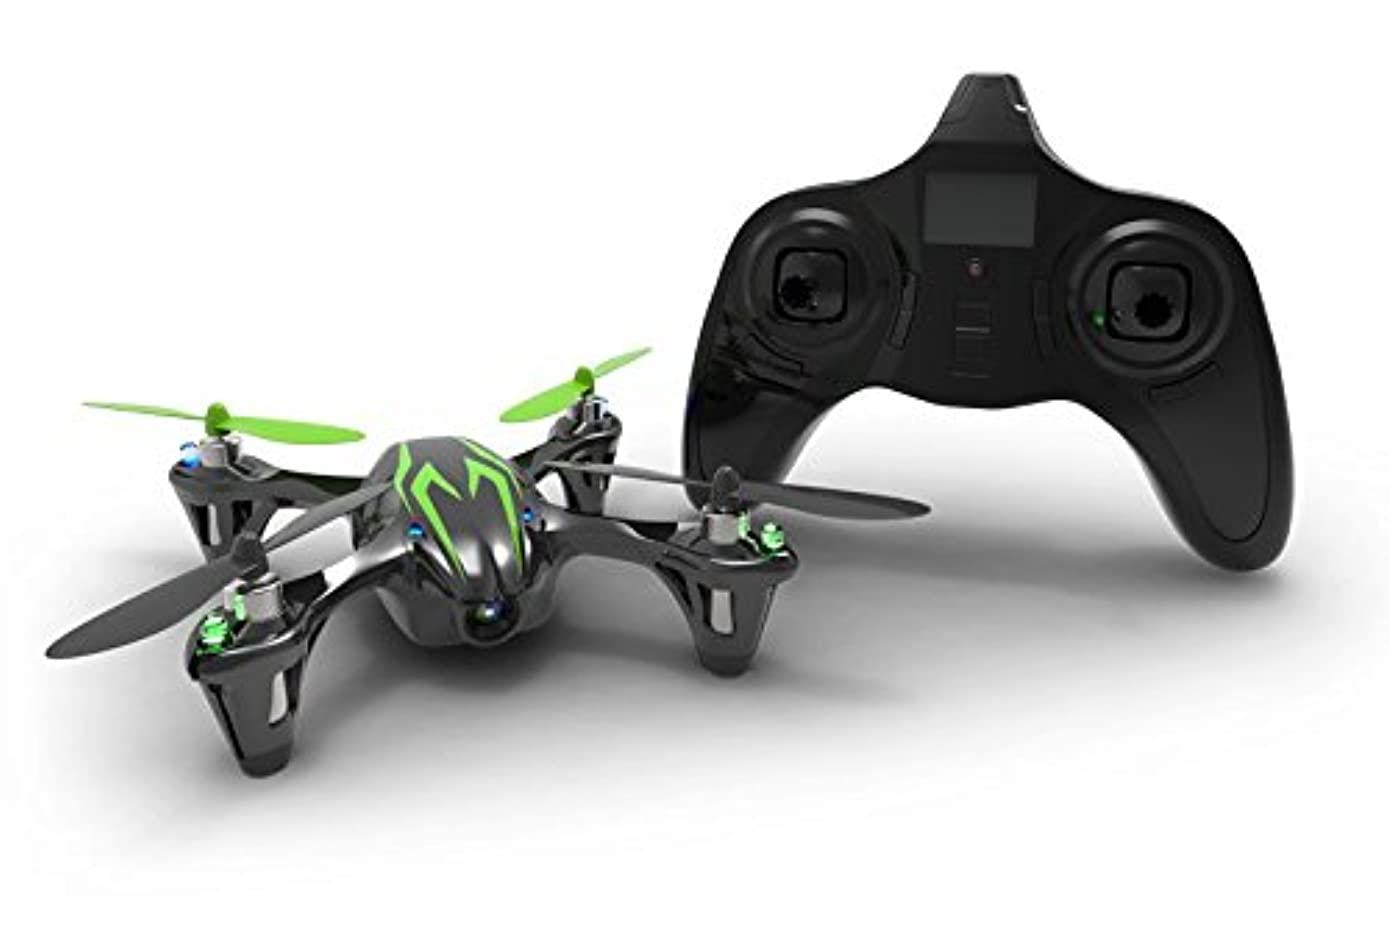 Hubsan H107C X4 Mini Quadcopter RC Helicopter Drone RTF with 480P HD Camera Toys Black/Green